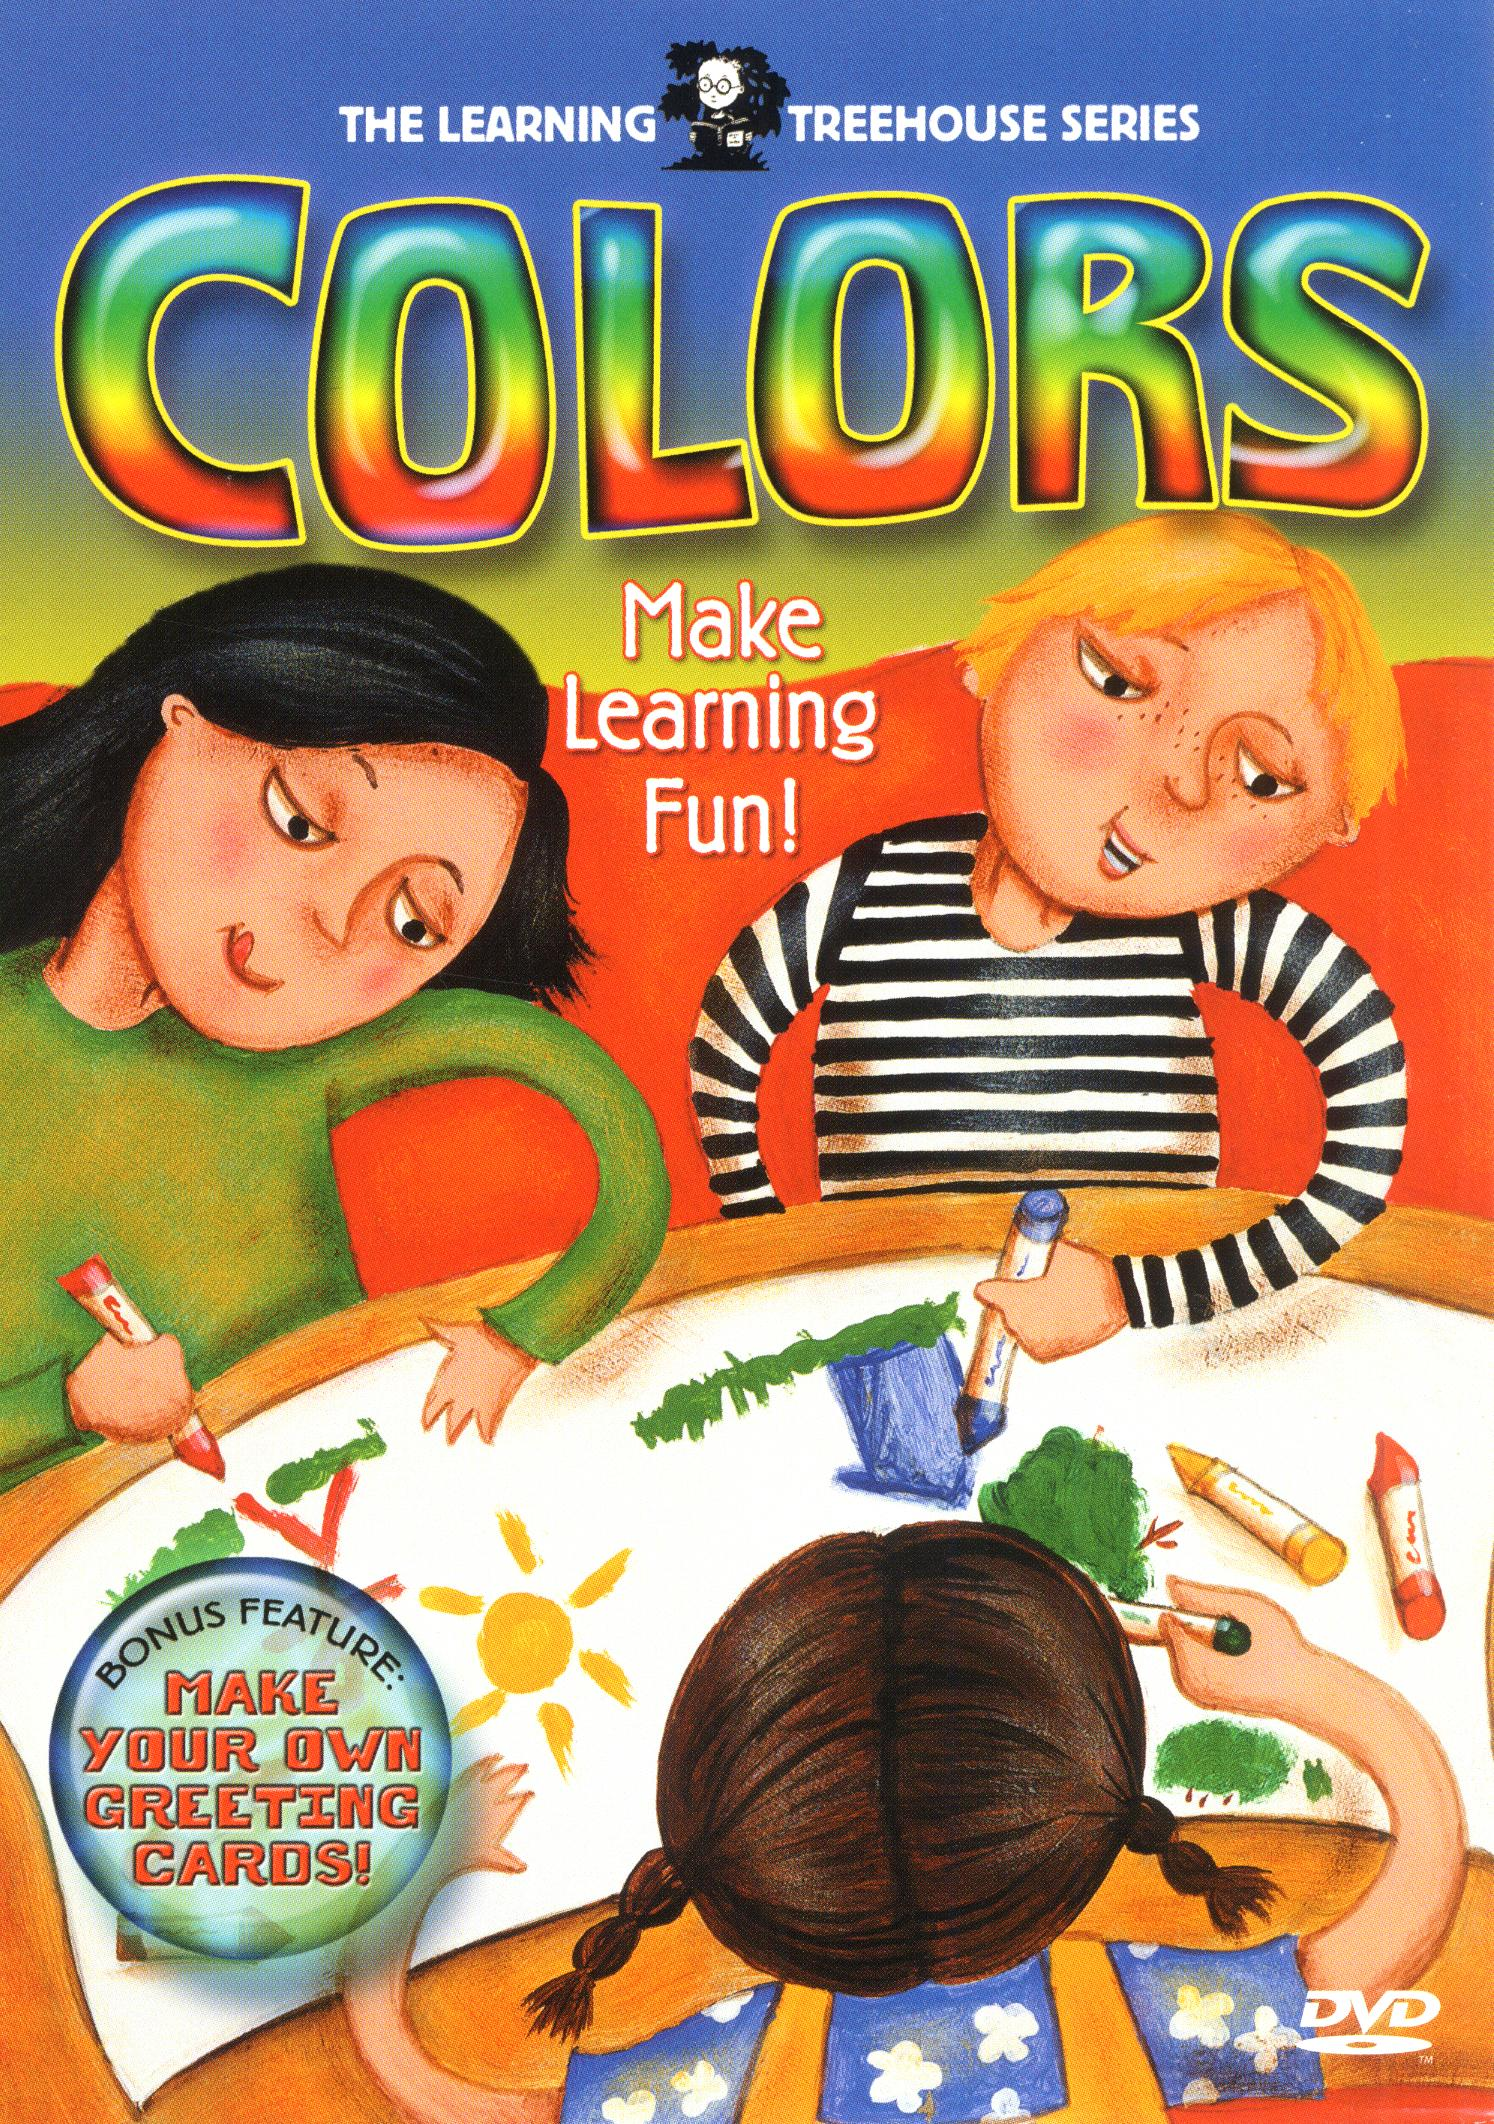 Learning Treehouse: Colors